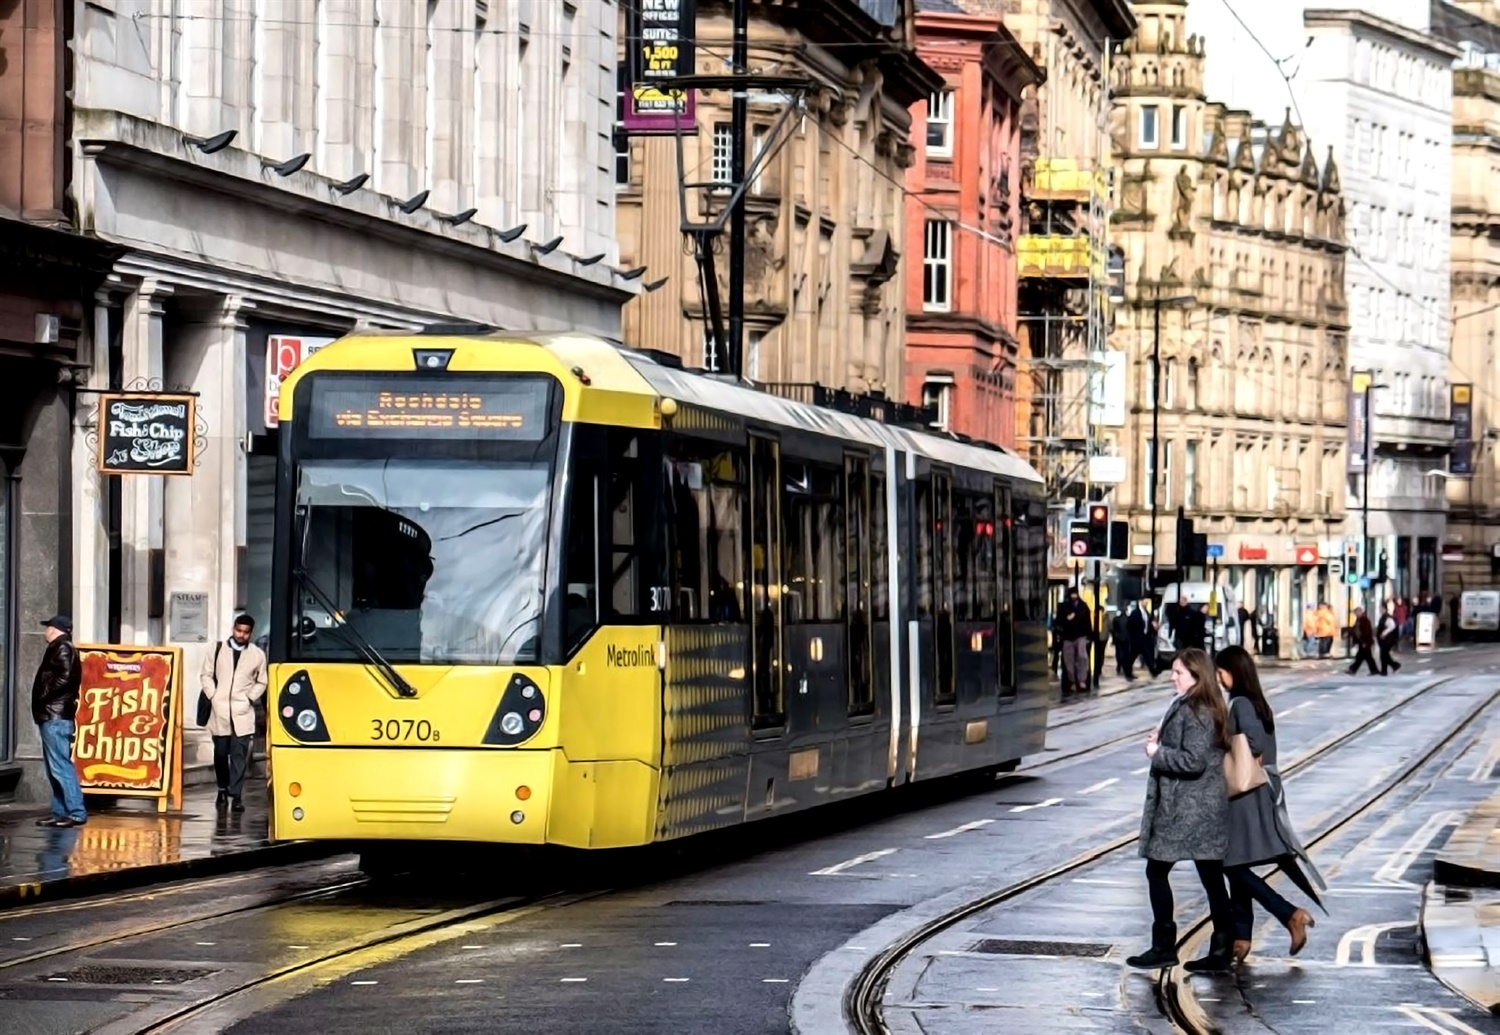 Tram passengers demand better value for money from services